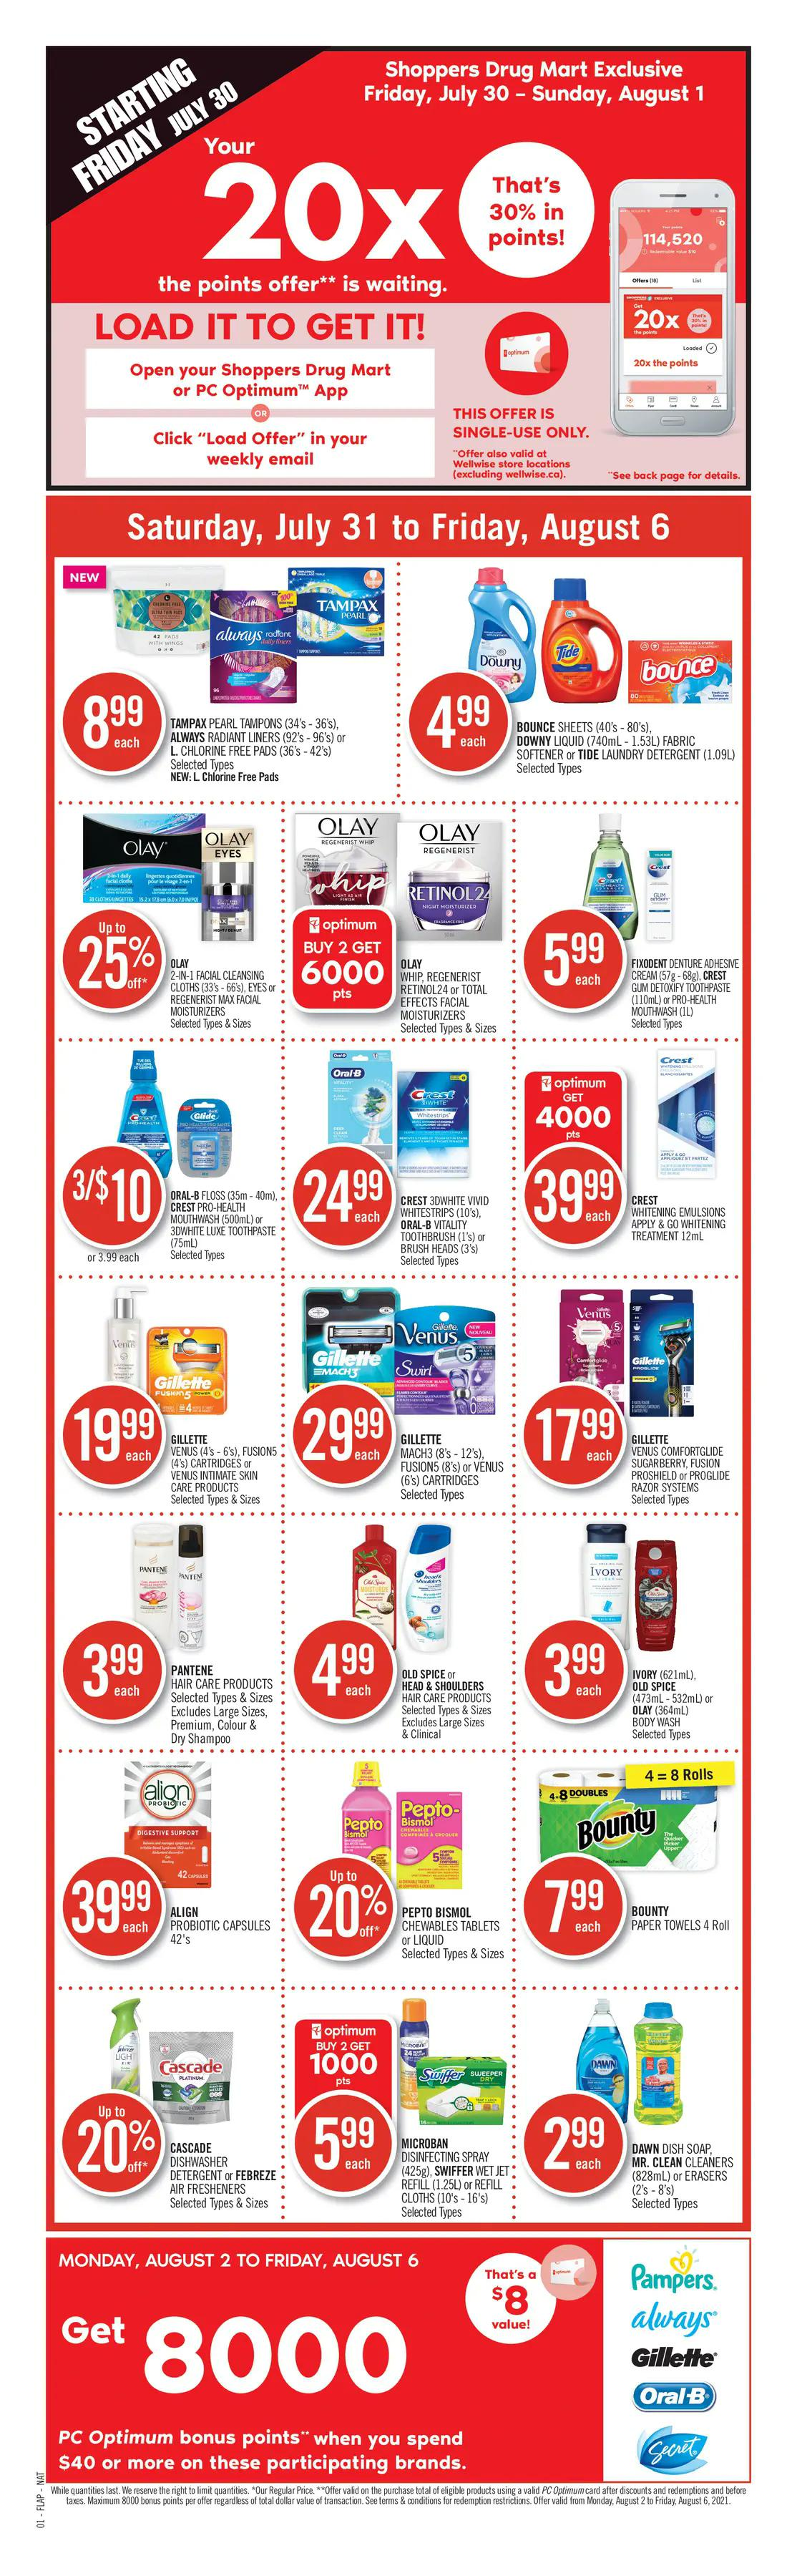 Shoppers Drug Mart - Weekly Flyer Specials - Page 1